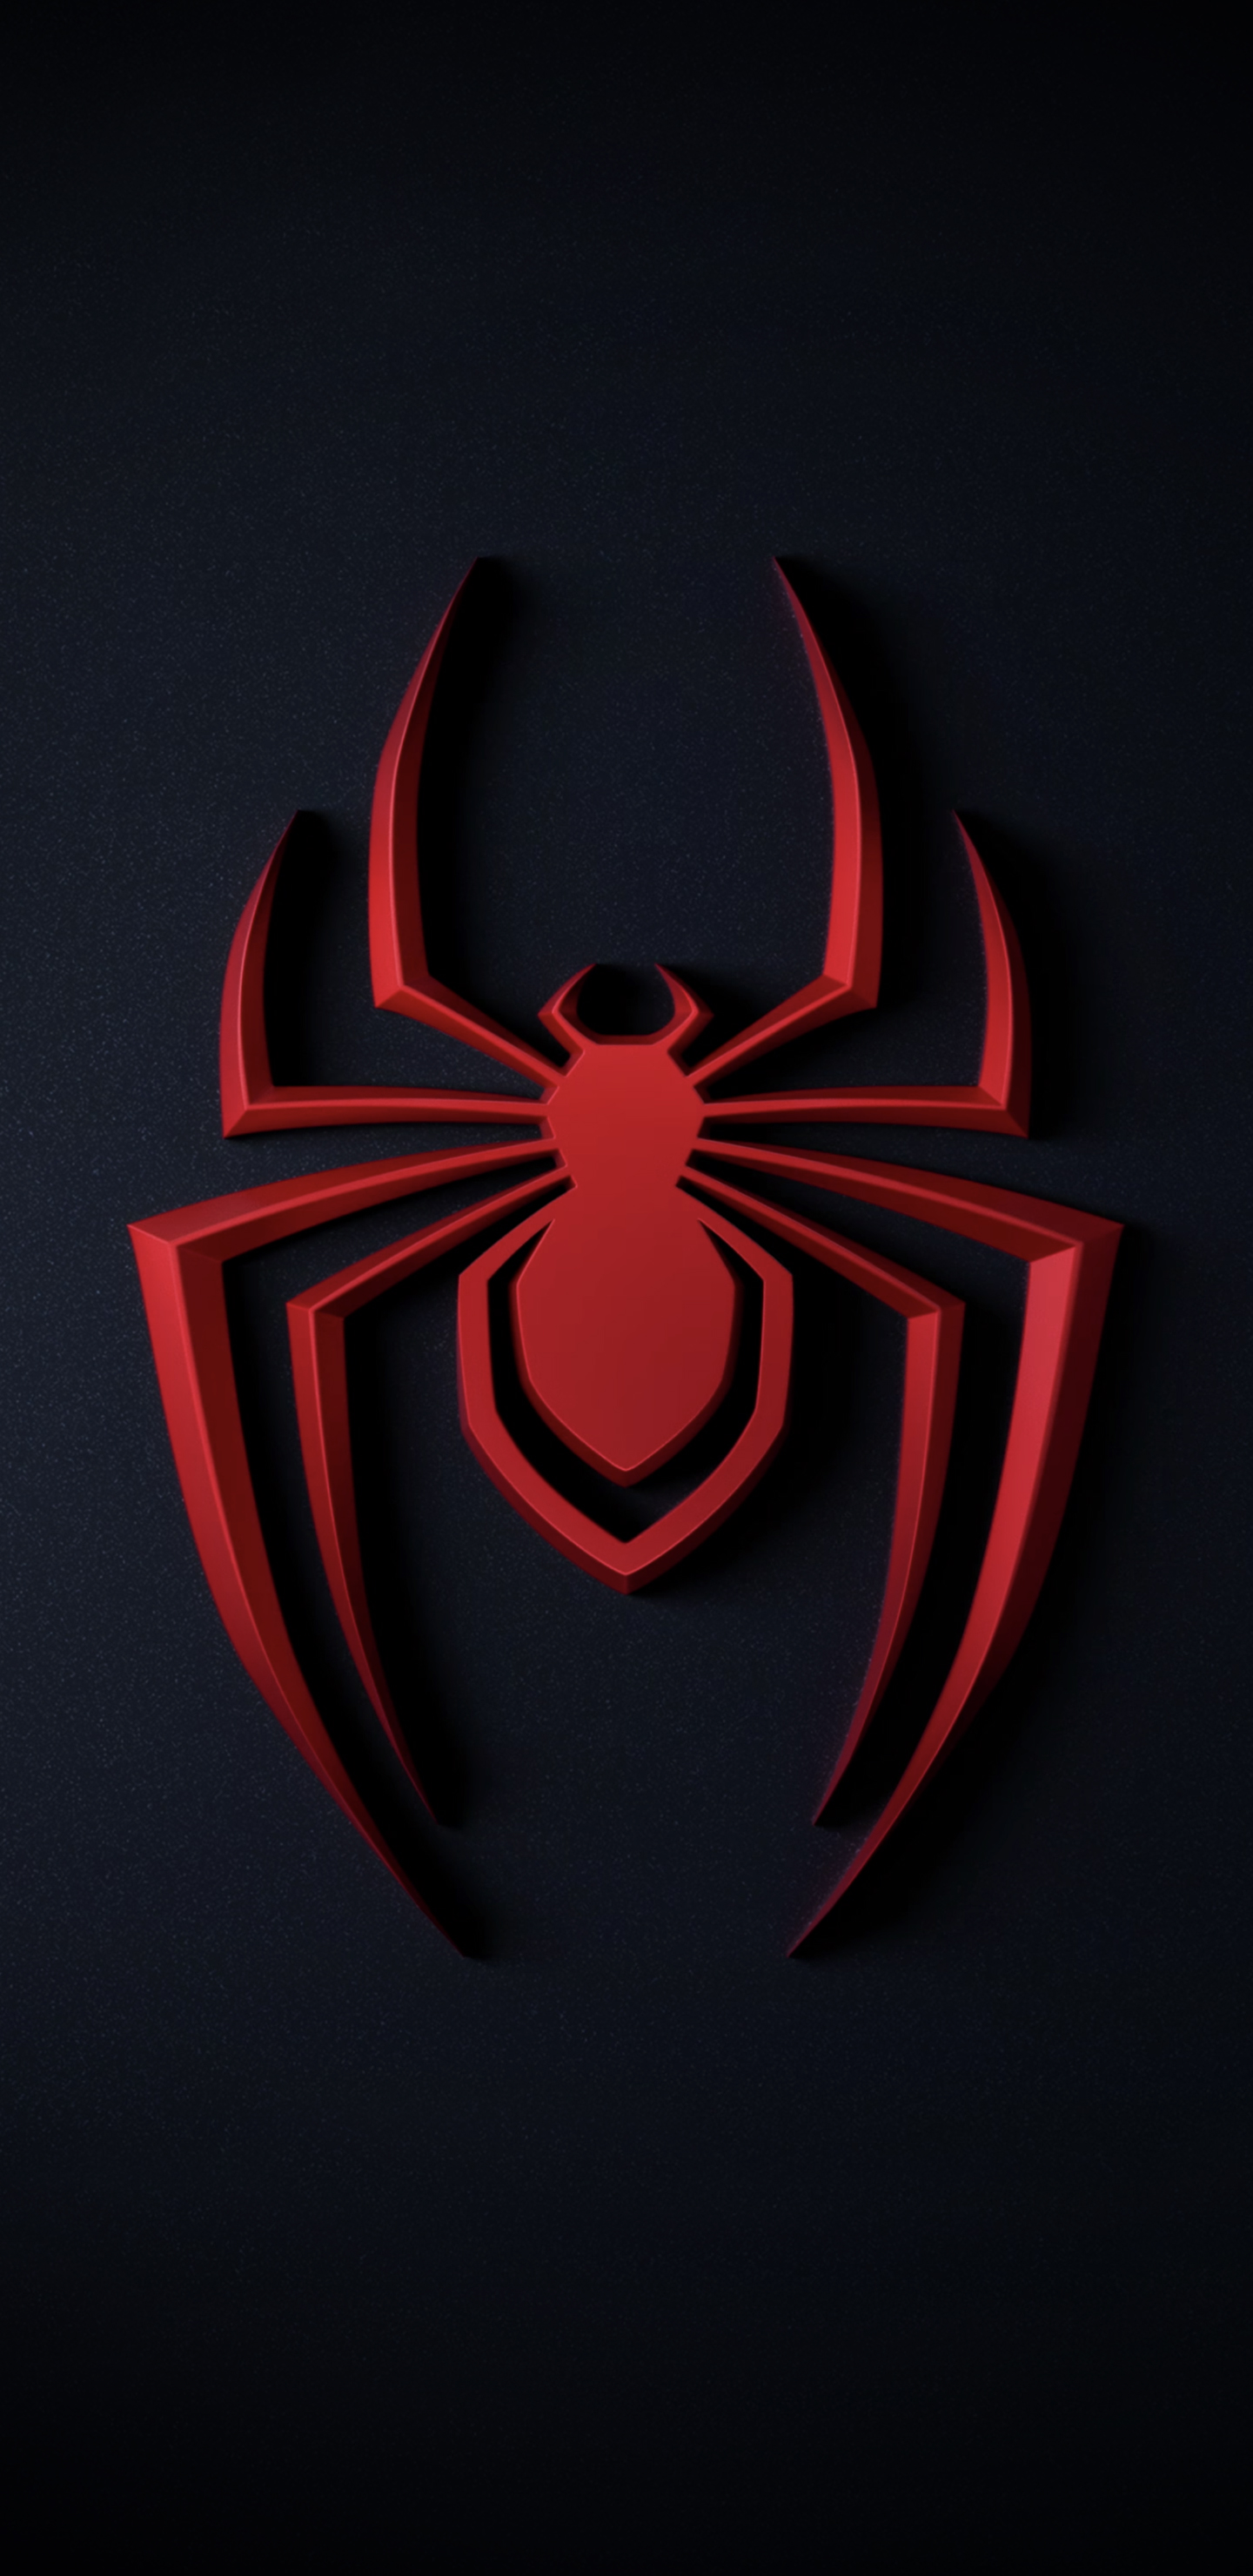 Spider Man Miles Morales Logo Wallpaper Cat With Monocle